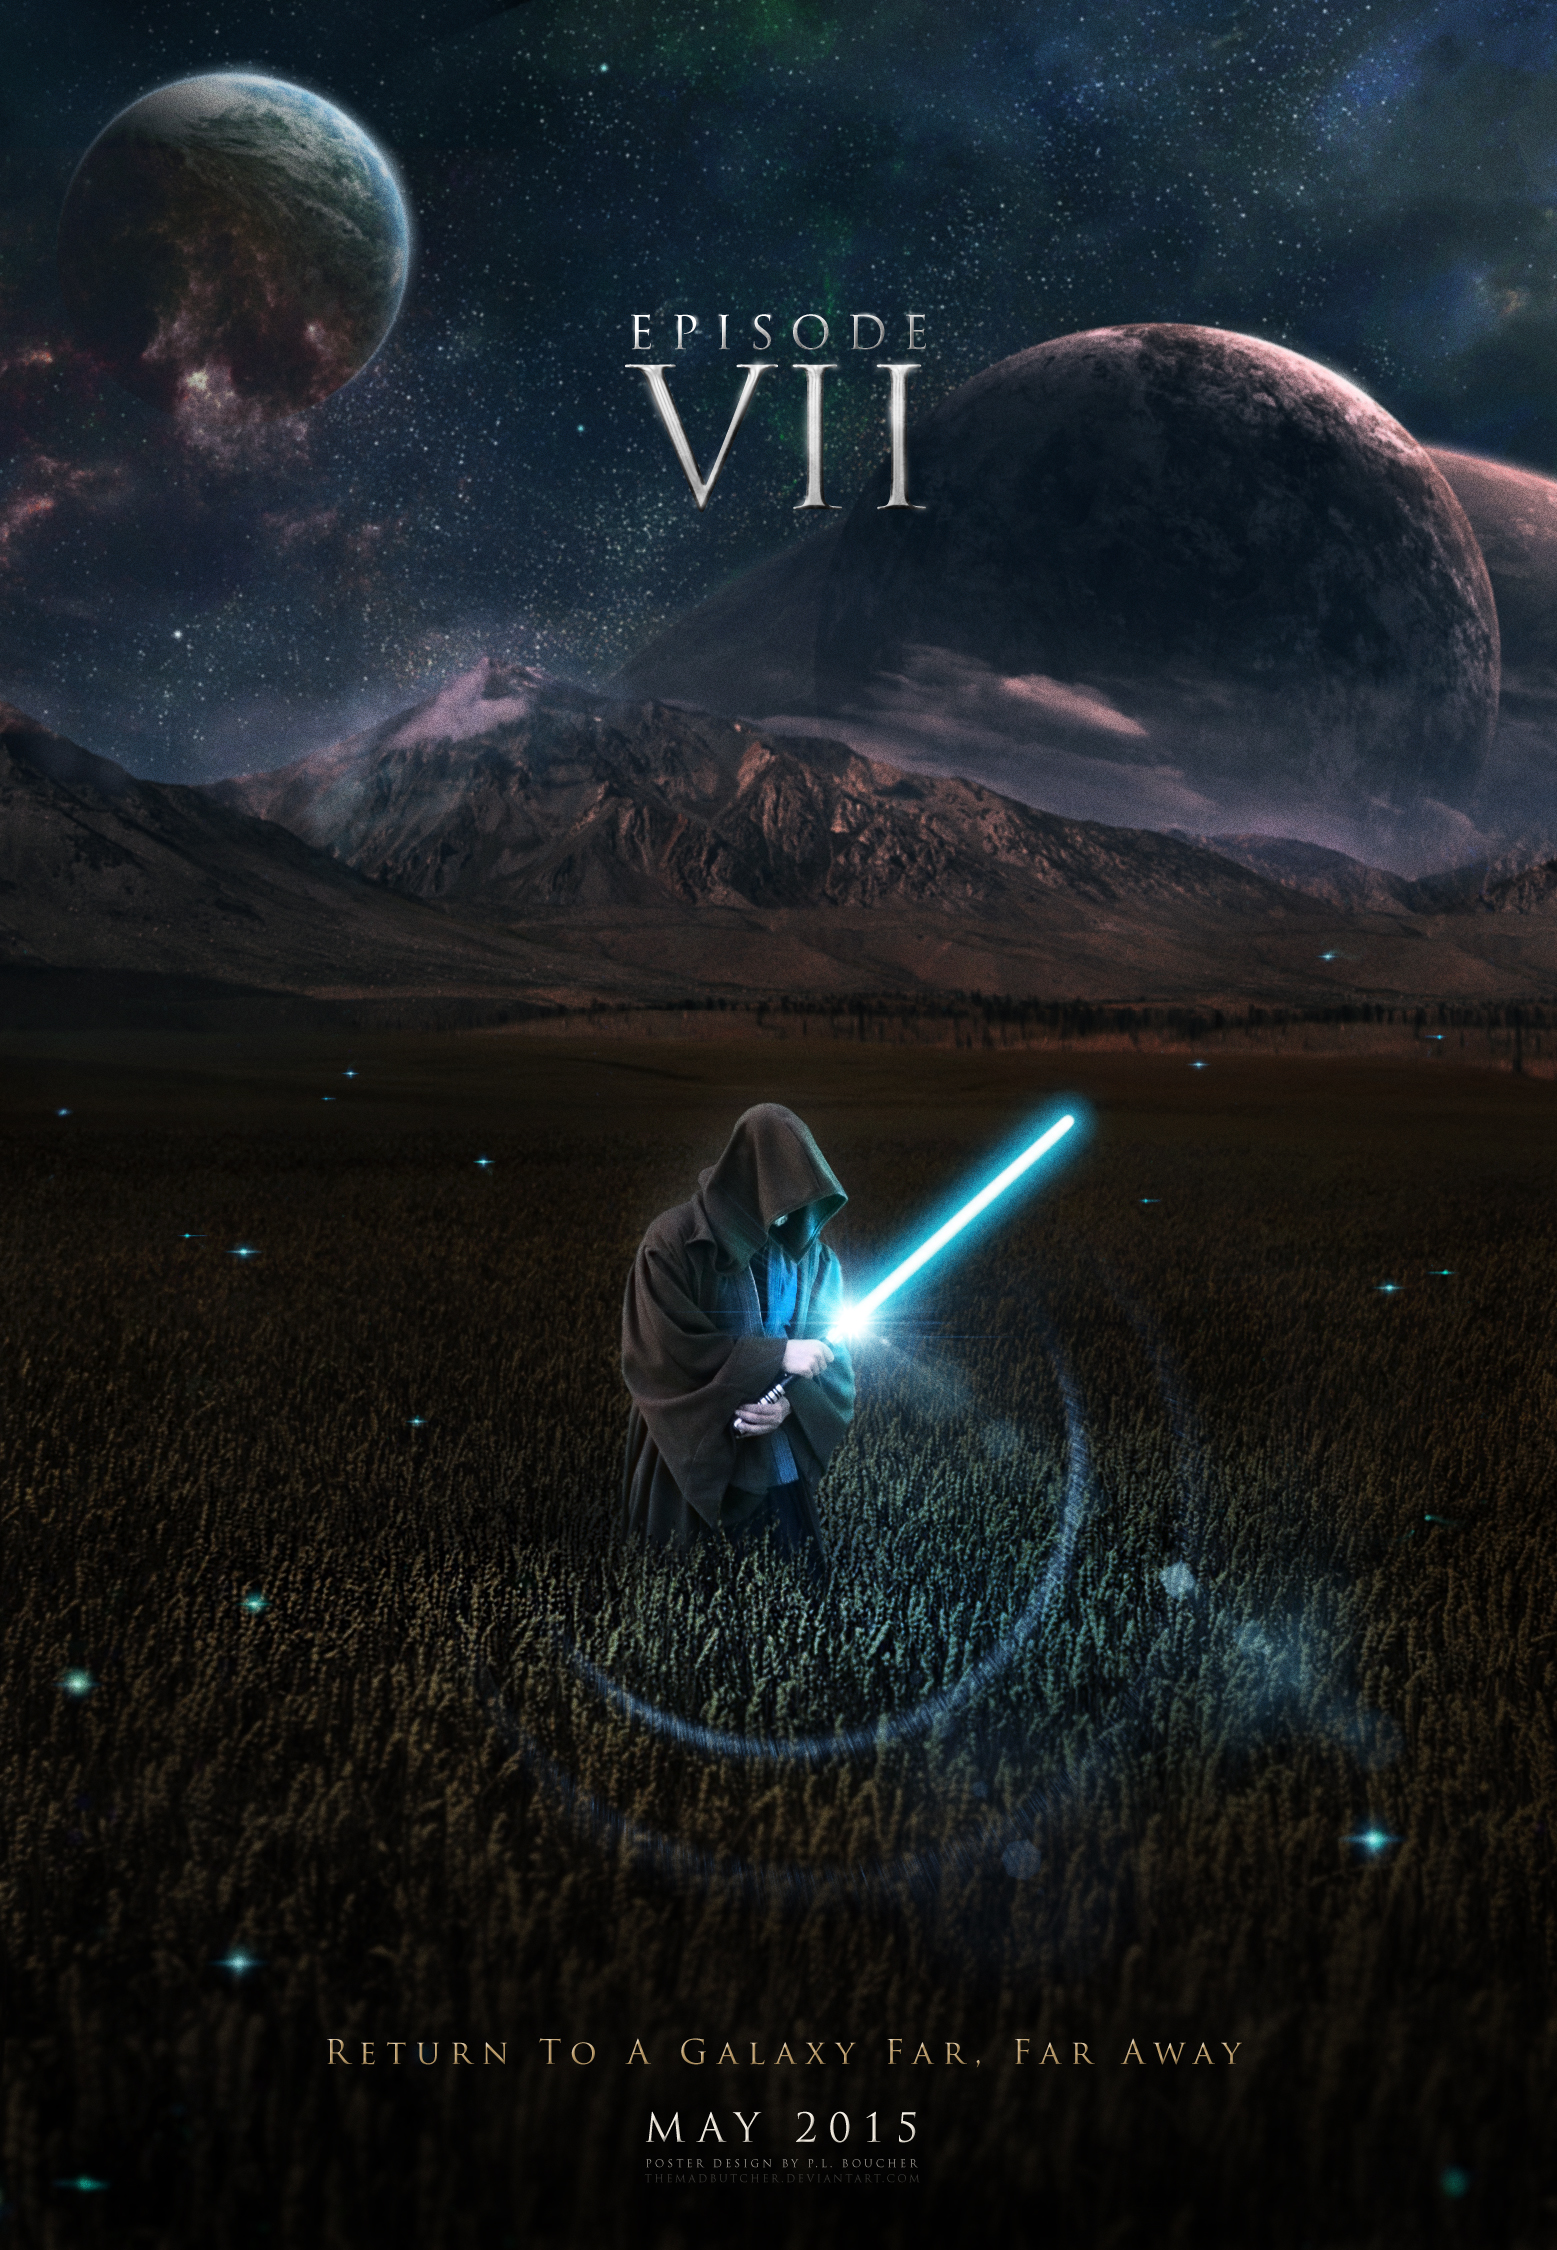 Fan made teaser poster for Star Wars VII, which is set to hit theaters next year.